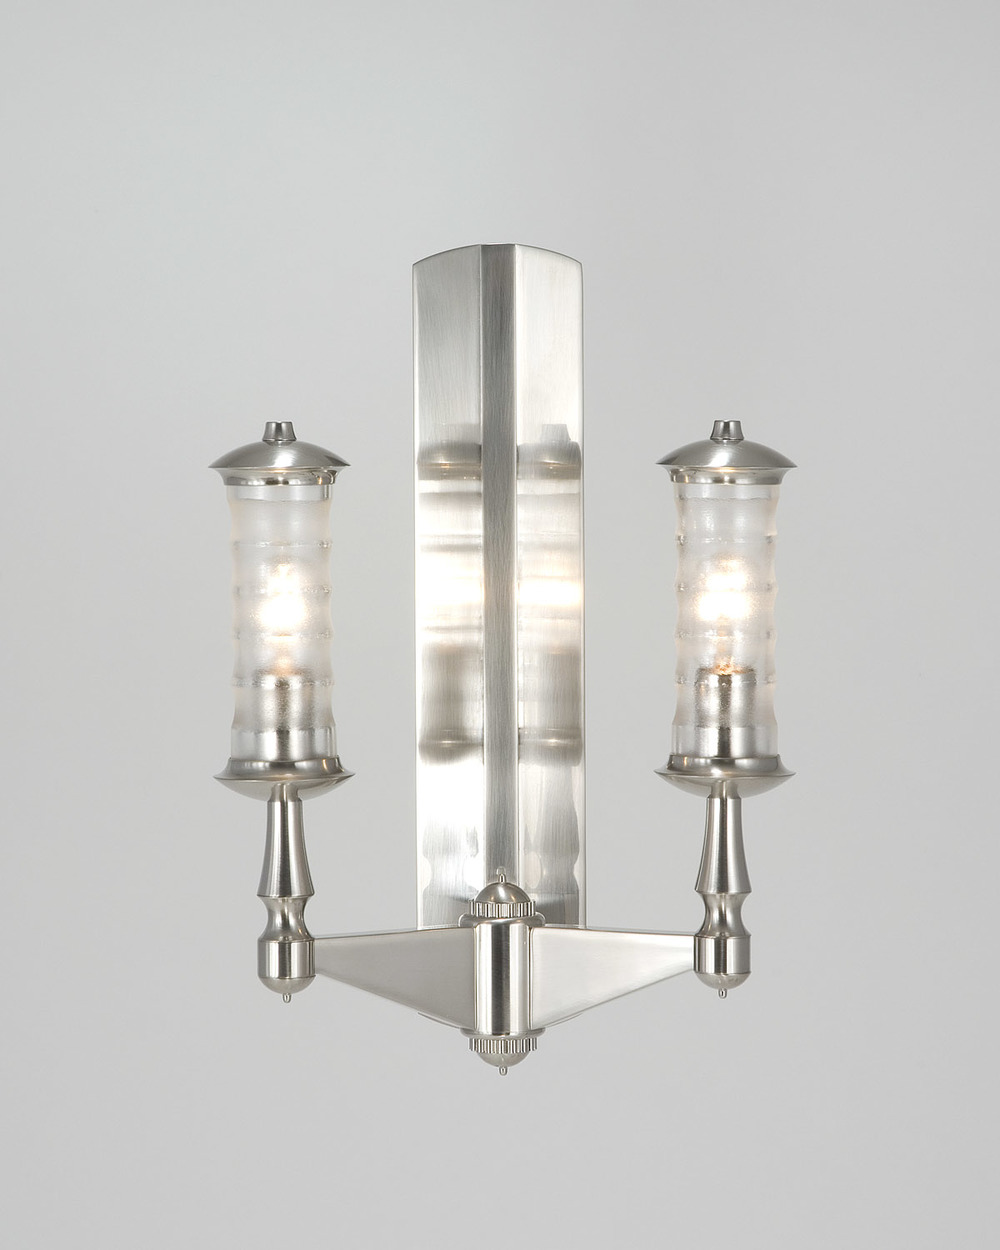 LimeLight Double Wall Sconce